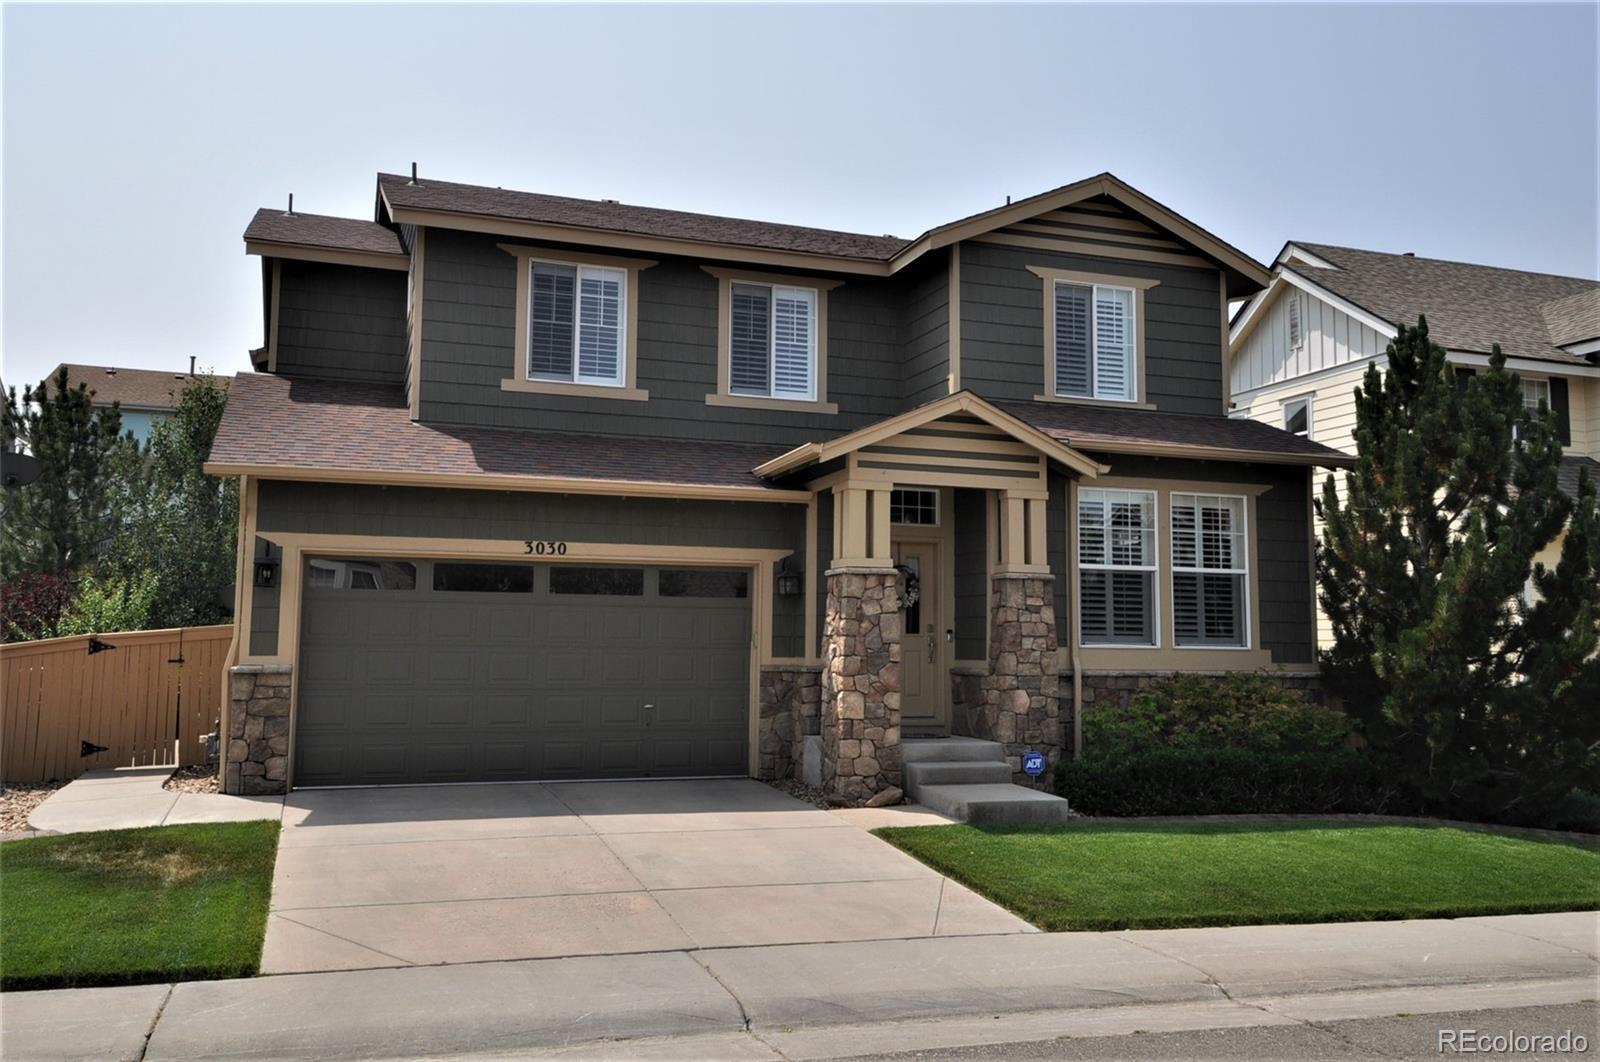 3030 Redhaven Way, Highlands Ranch, CO 80126 - #: 3176730